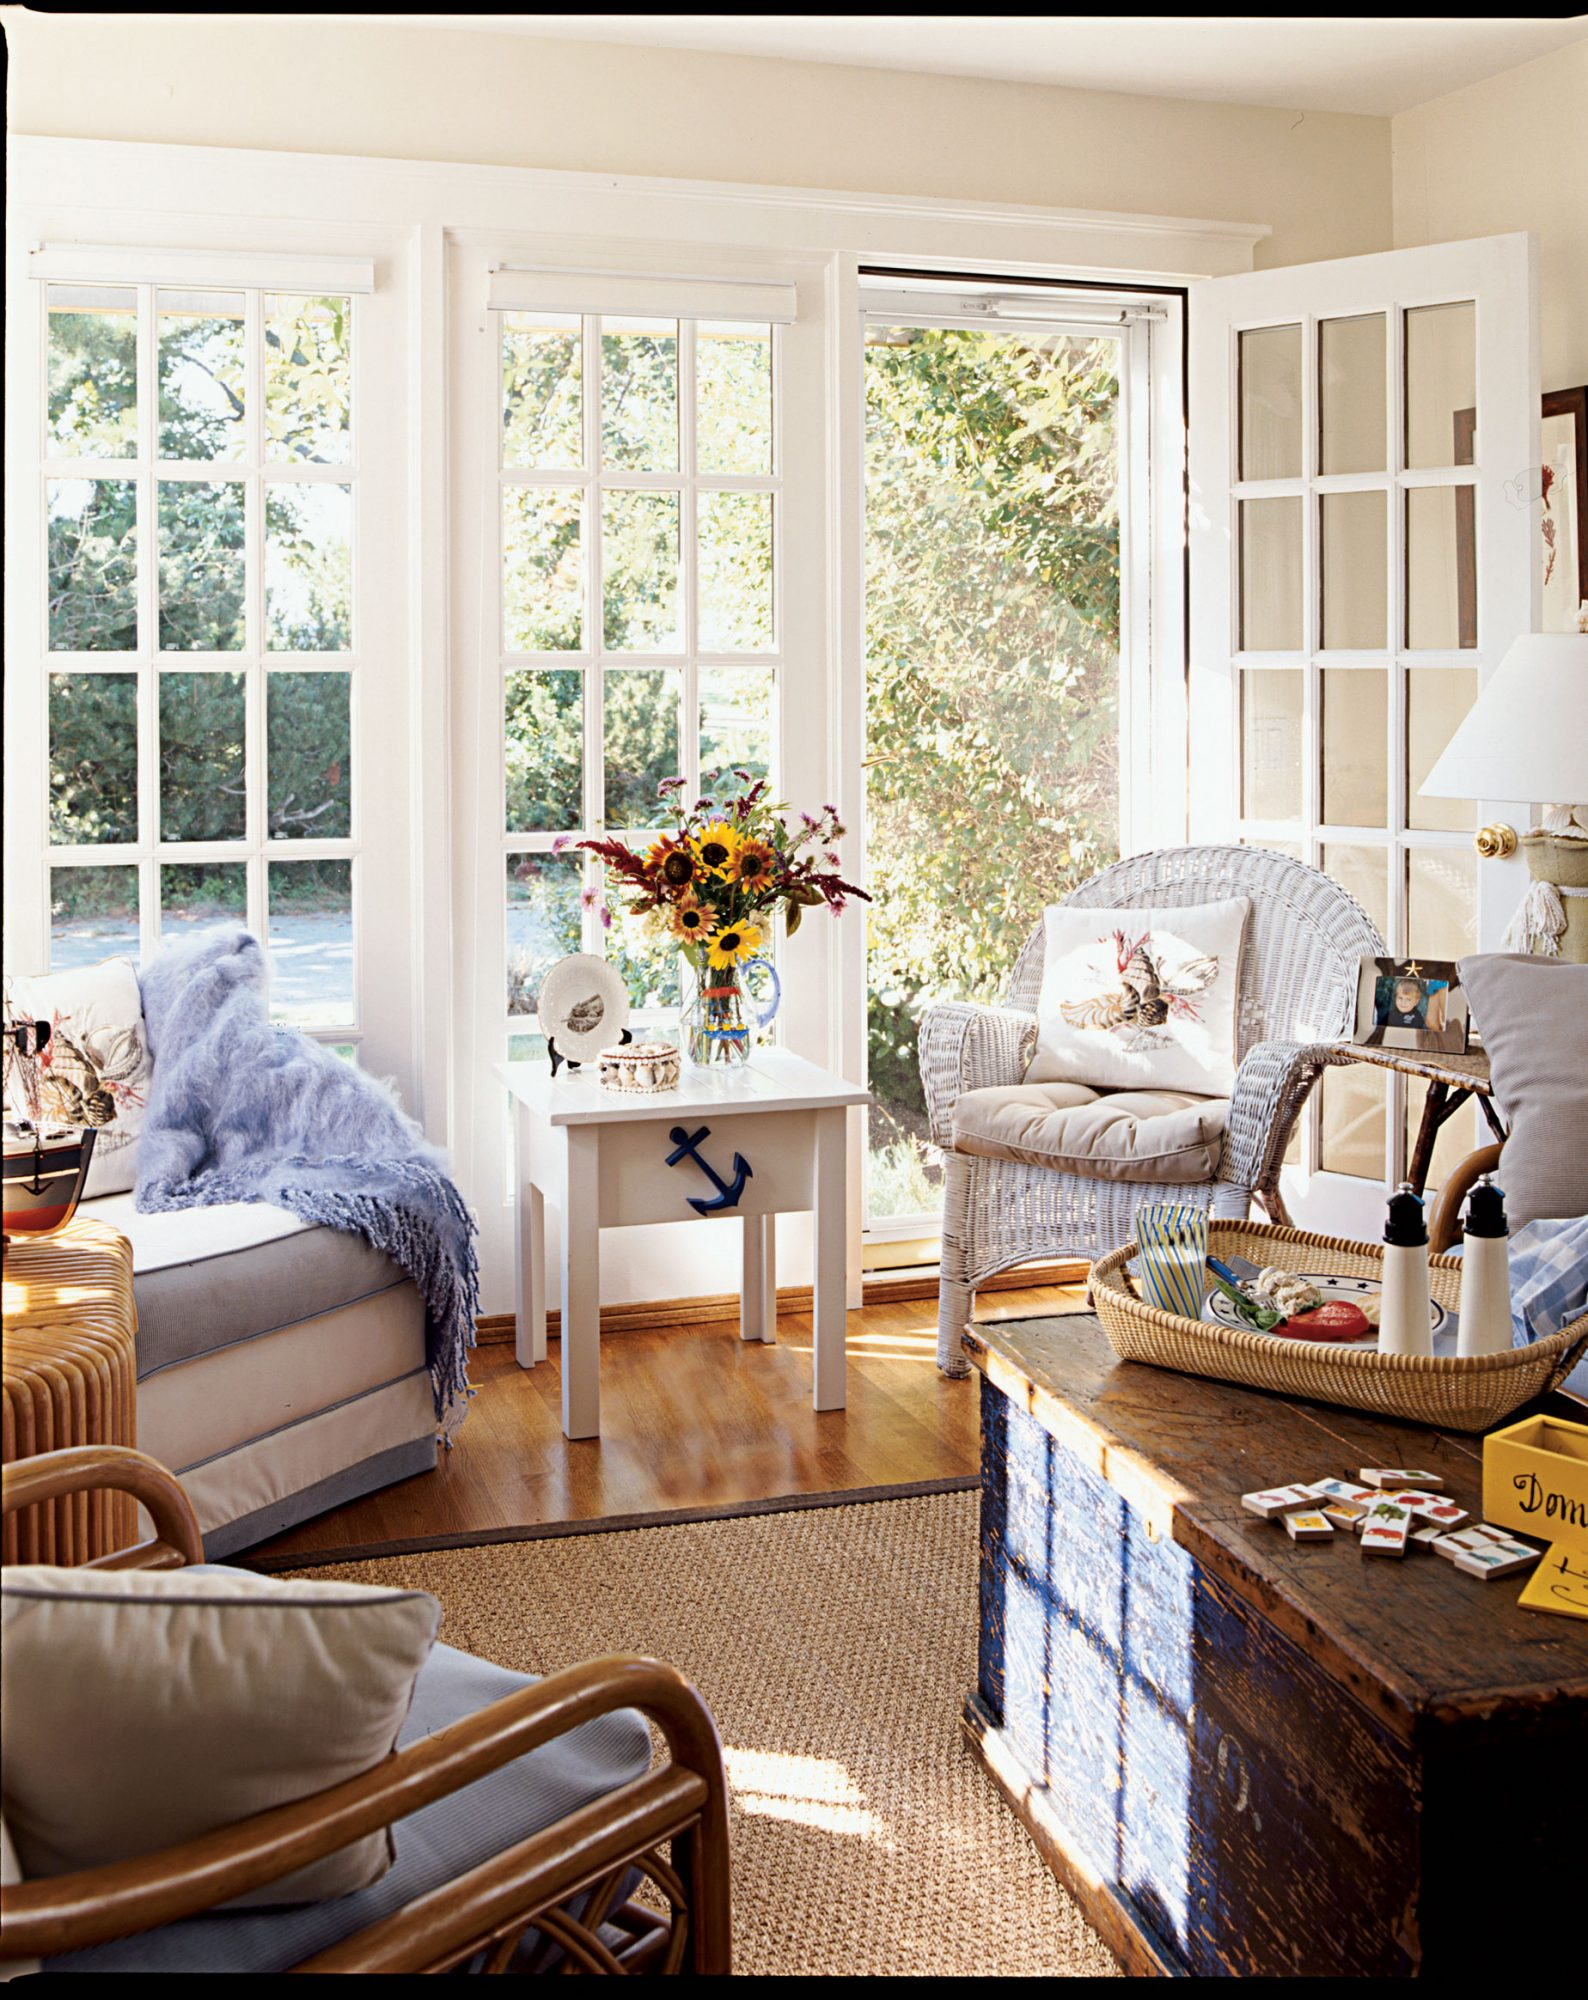 A sea grass rug, wicker and wood furniture, and plenty of streaming light from the French doors fill this sunroom. A few nautical accents recall the idyllic setting.